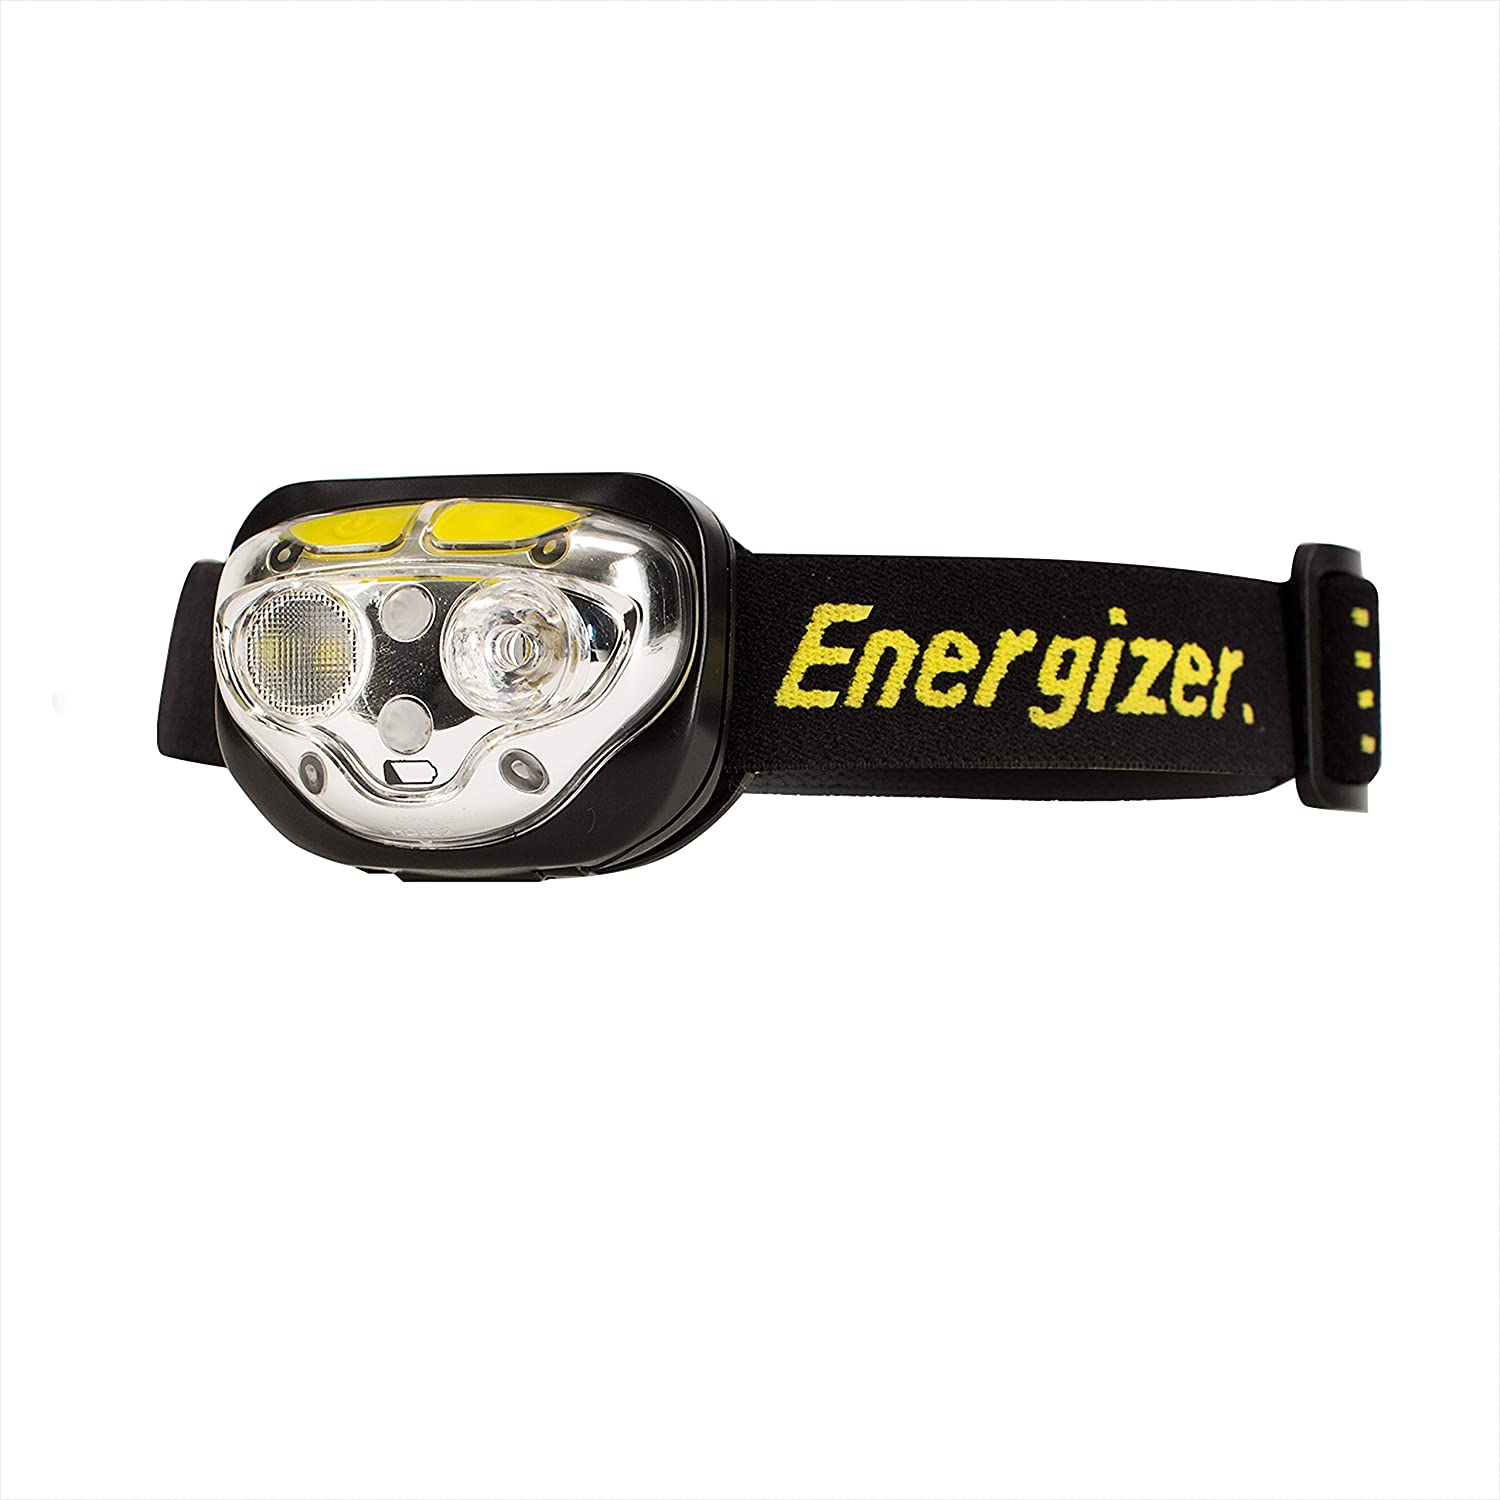 Energizer 2 LED Headlight